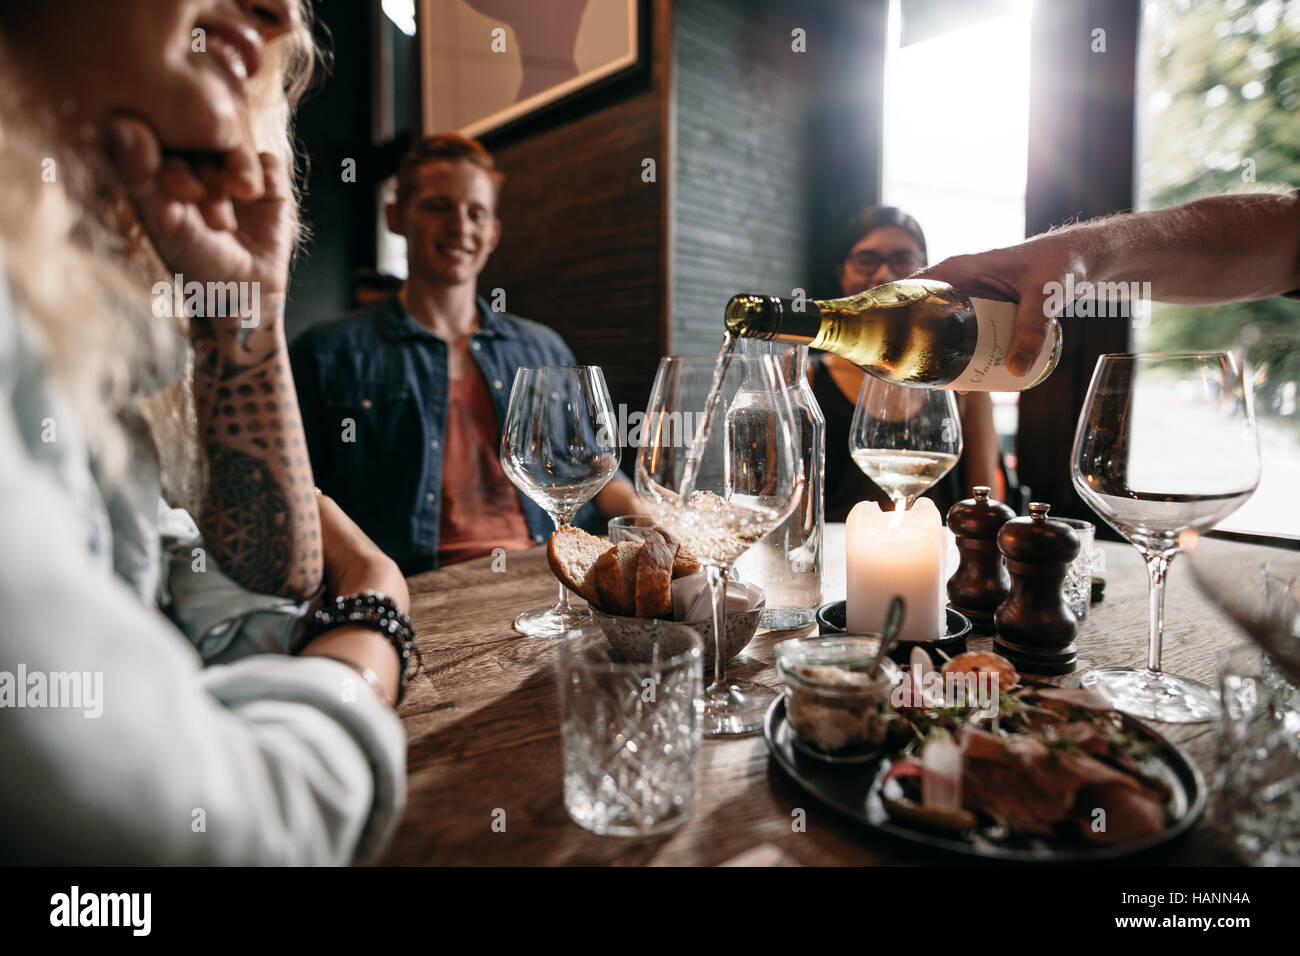 Man hand pouring white wine from the bottle into glasses with friends sitting around the table. Group of young people - Stock Image